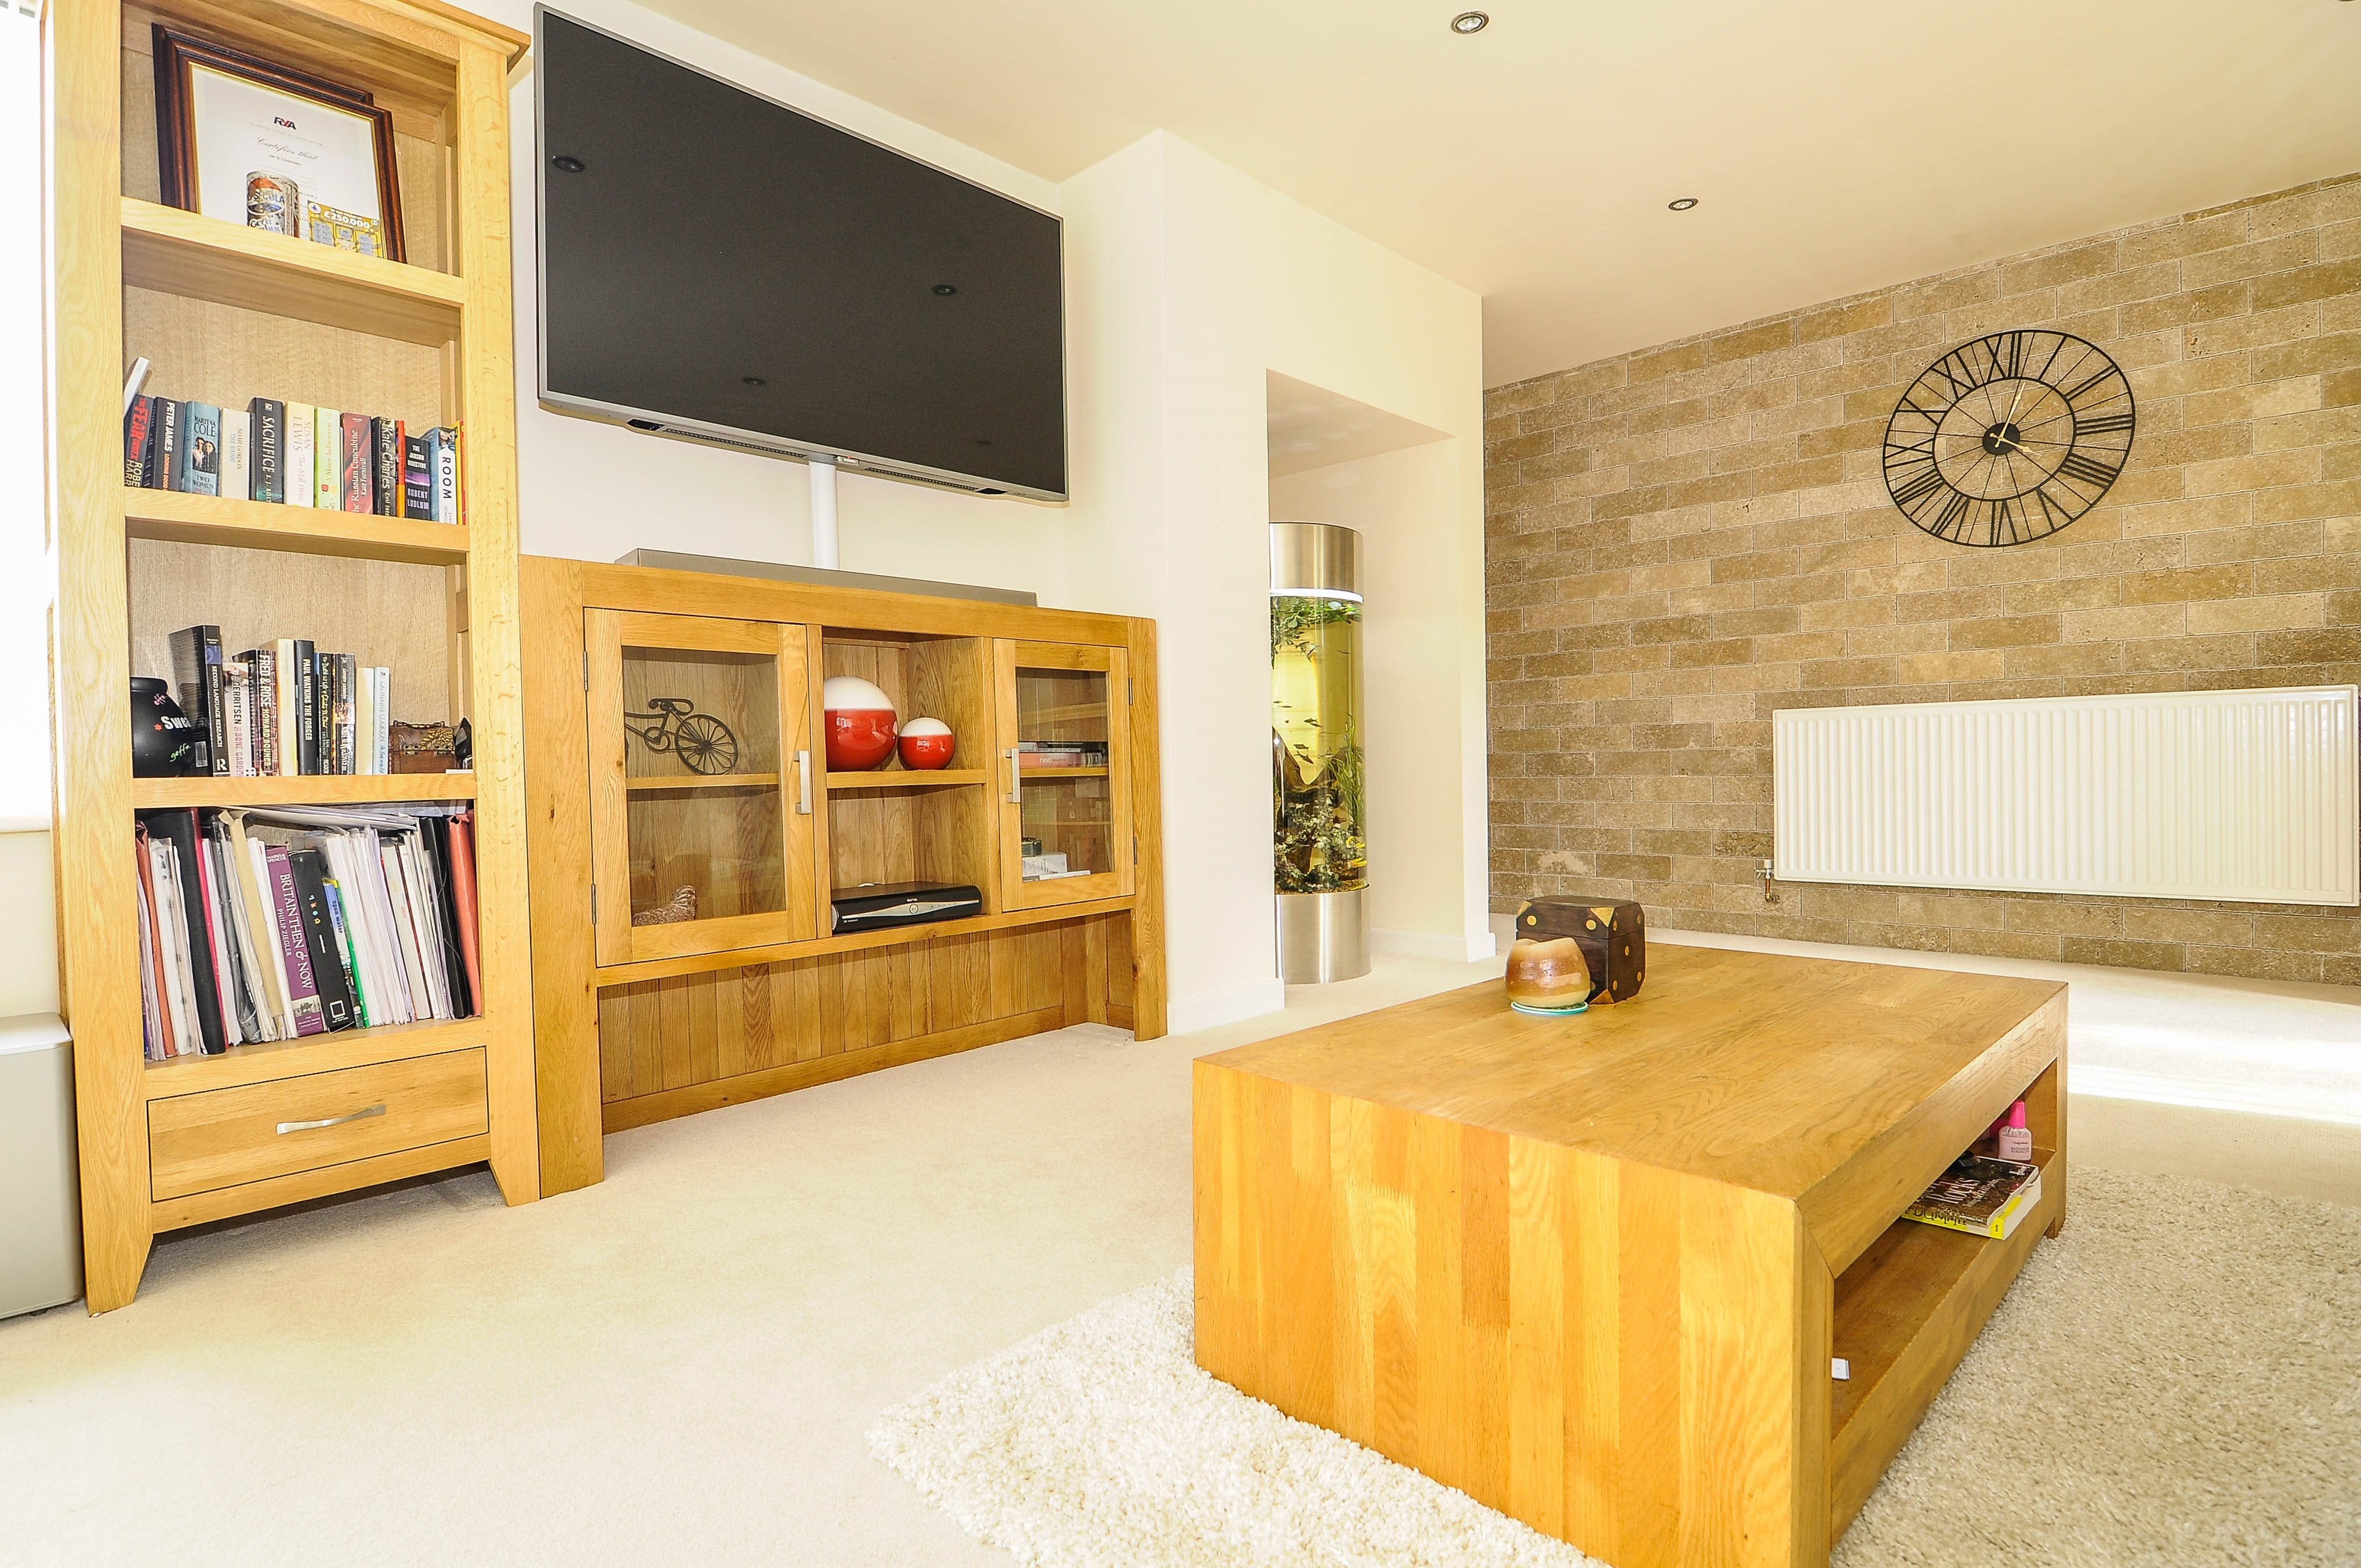 3 bed house to rent in Poole, Dorset, BH14